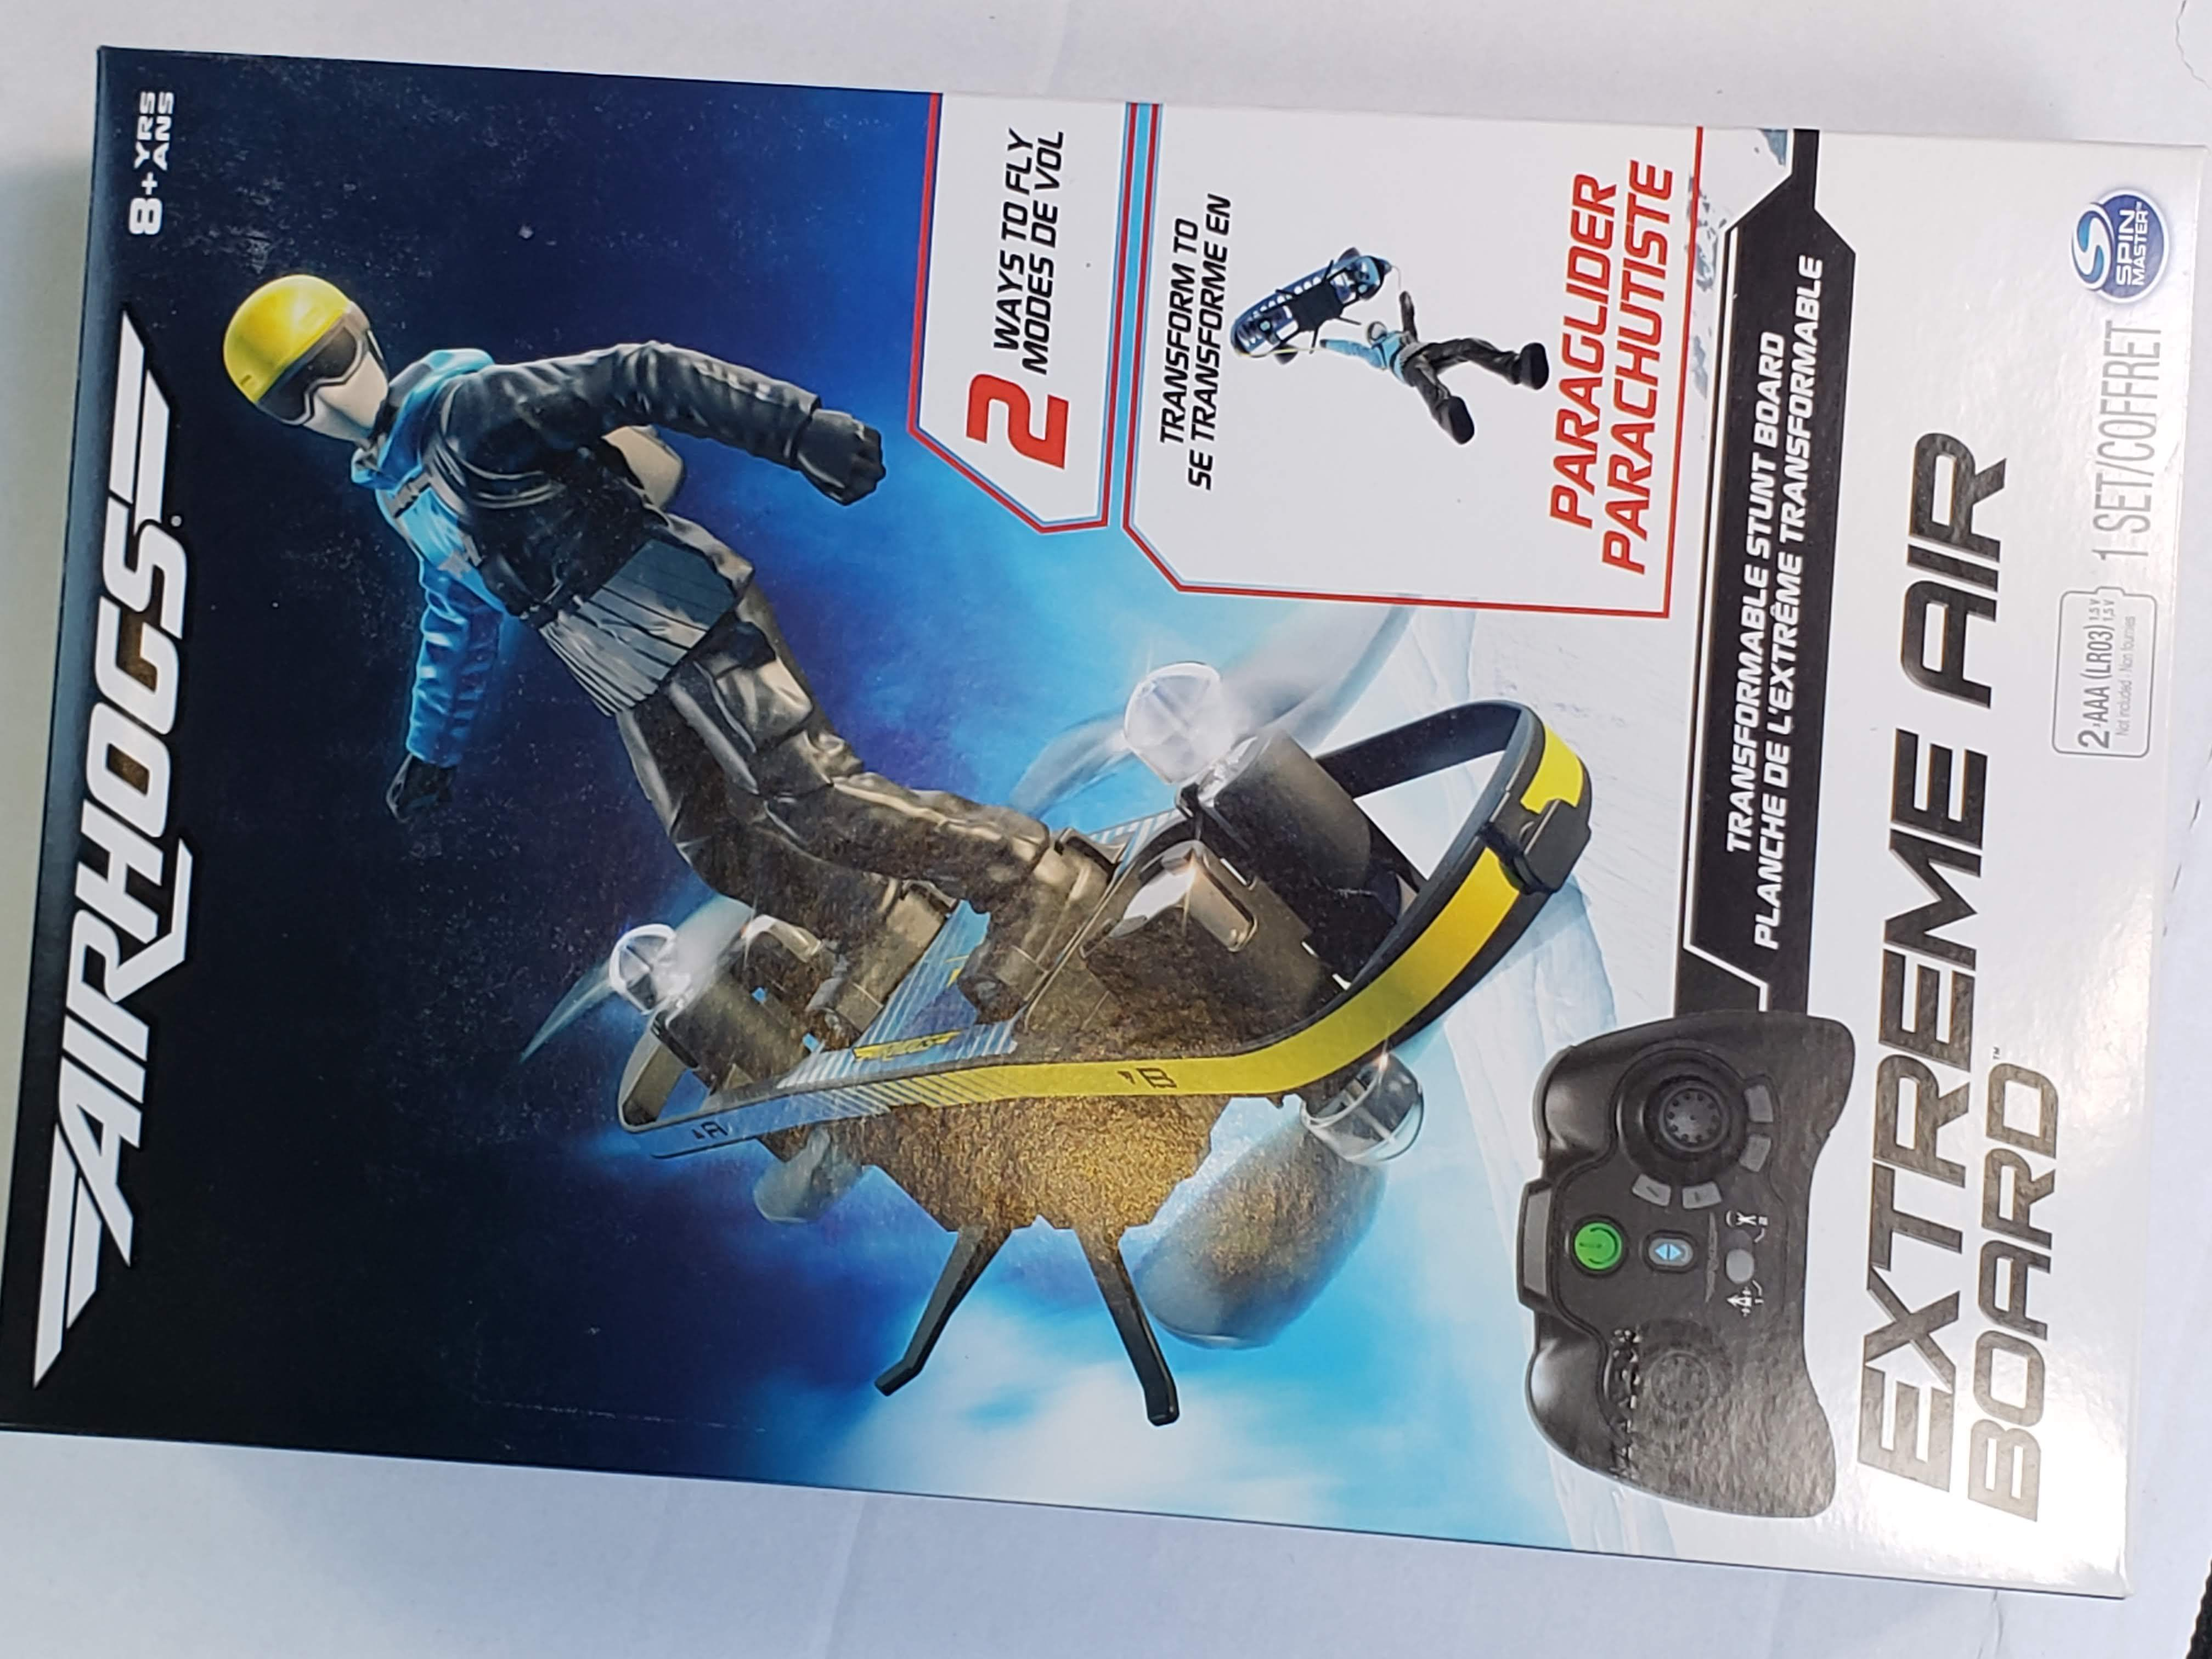 Air Hogs Extreme Air Board 2-in-1 Transforms from RC Stunt Board to Paraglider